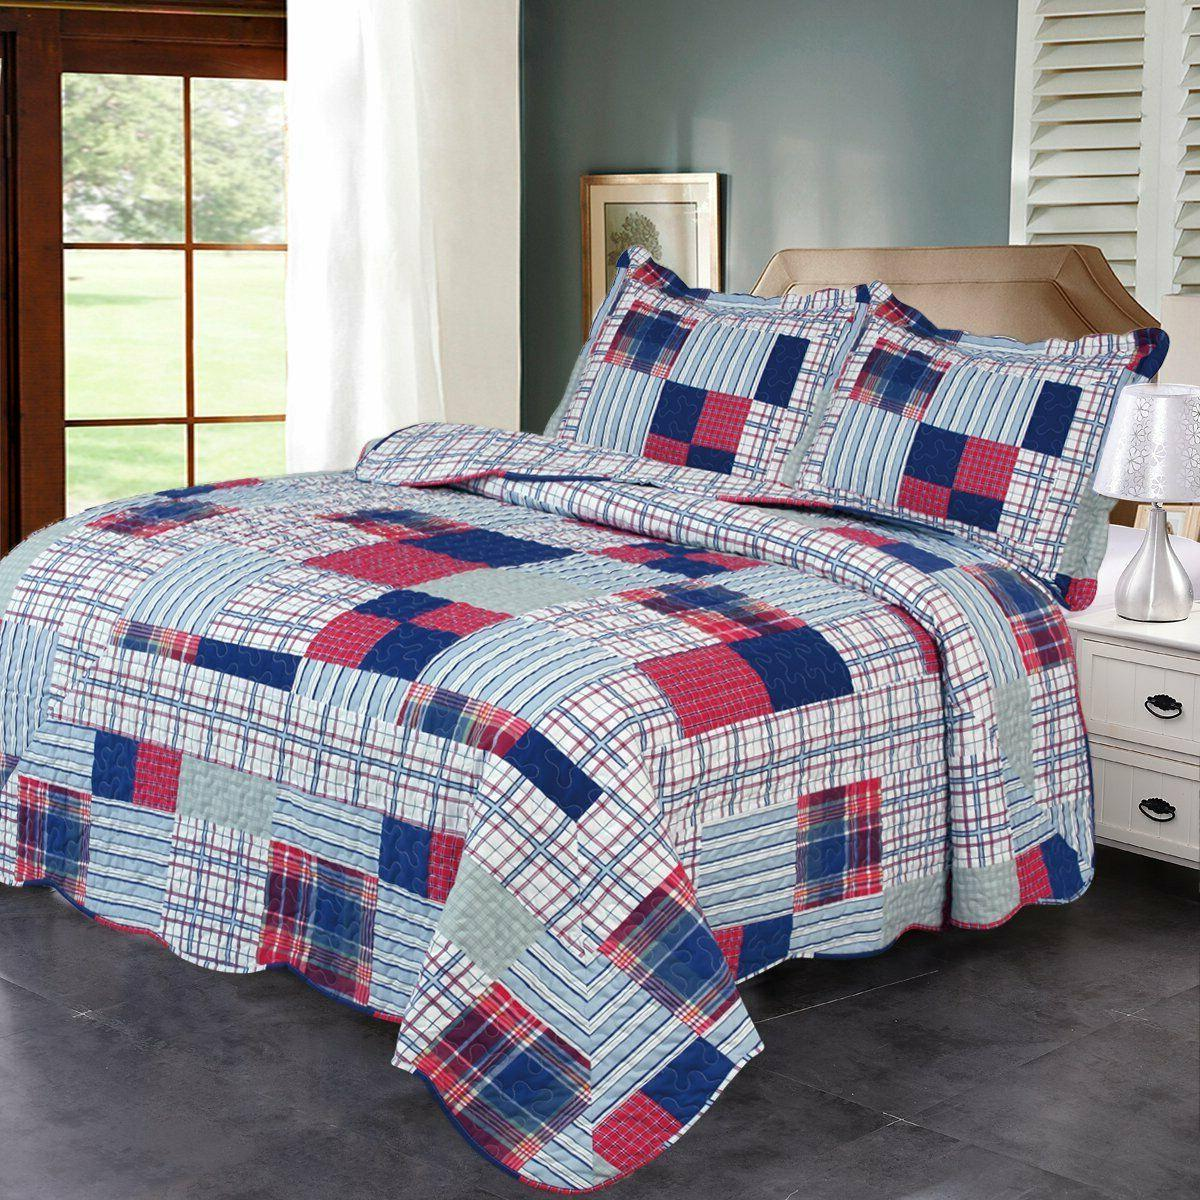 3-Piece Beach Set with Bedspread and